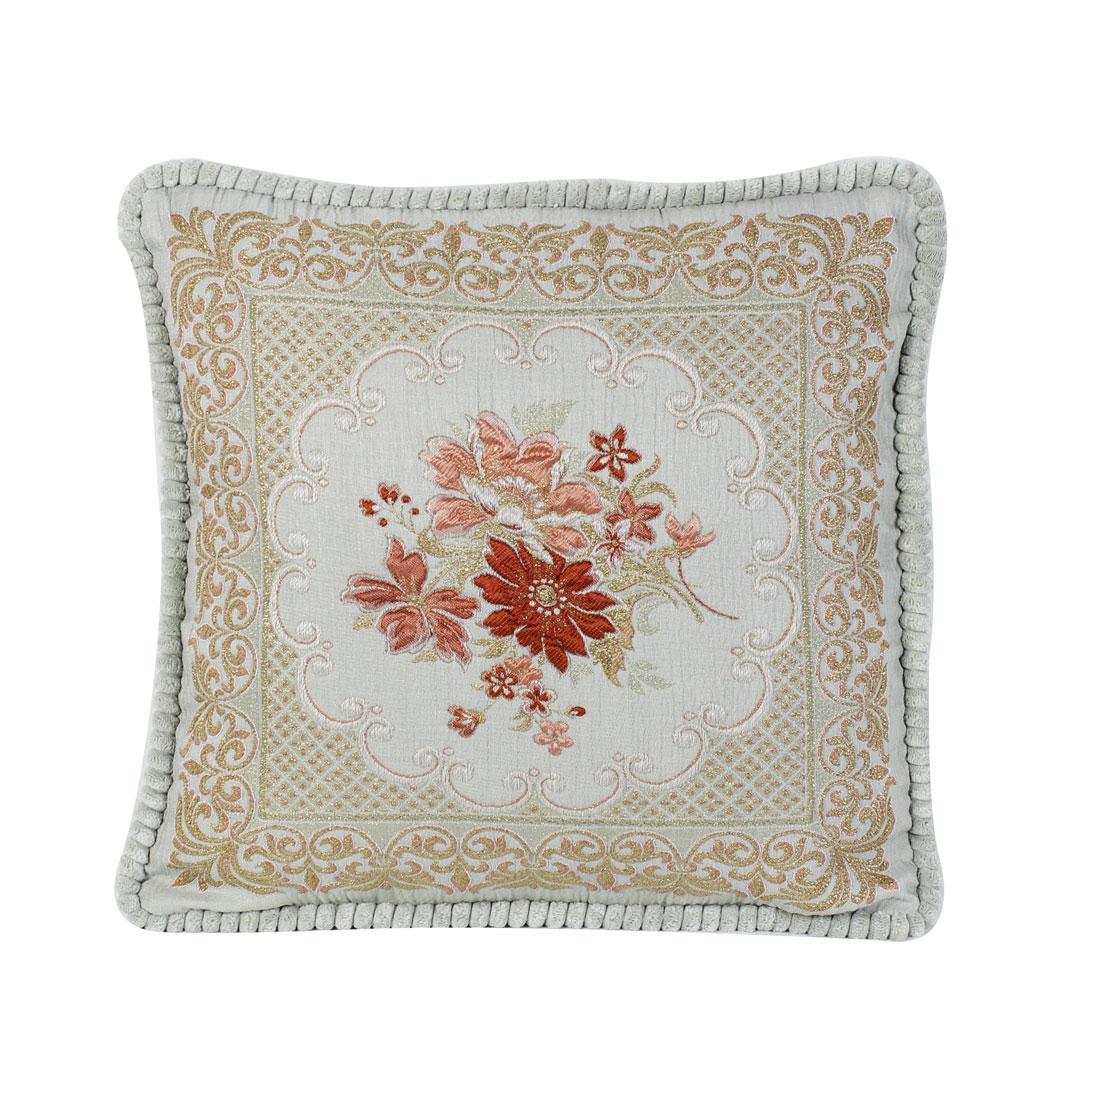 Chenille Embroidery Throw Cushion Pillow 50cm x 50cm Light Green